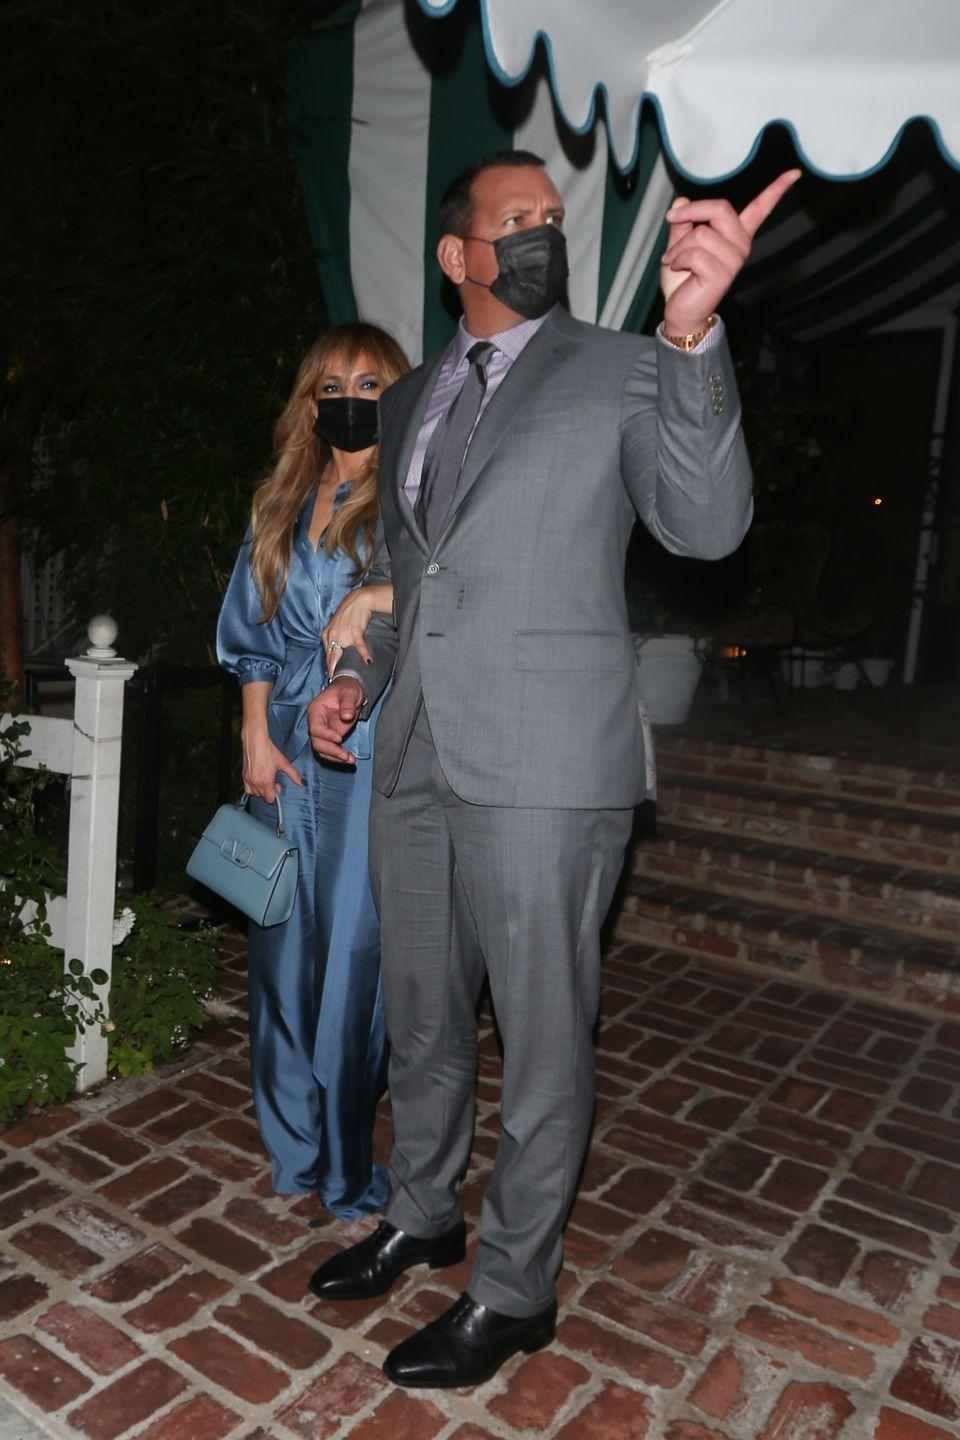 """<p>The singer wore a blue, sapphire-hued jumpsuit teamed with a matching-coloured Versace bag for her date night with fiancé Alex Rodriguez at San Vicente Bungalows in LA.</p><p>Earlier in the day, J-Lo's hair stylist, Chris Appleton, <a href=""""https://www.instagram.com/p/CGTNeWyhe93/?utm_source=ig_embed"""" rel=""""nofollow noopener"""" target=""""_blank"""" data-ylk=""""slk:announced"""" class=""""link rapid-noclick-resp"""">announced</a> on his Instagram account that the singer had got a new fringe ahead of her romantic night out.<br></p>"""